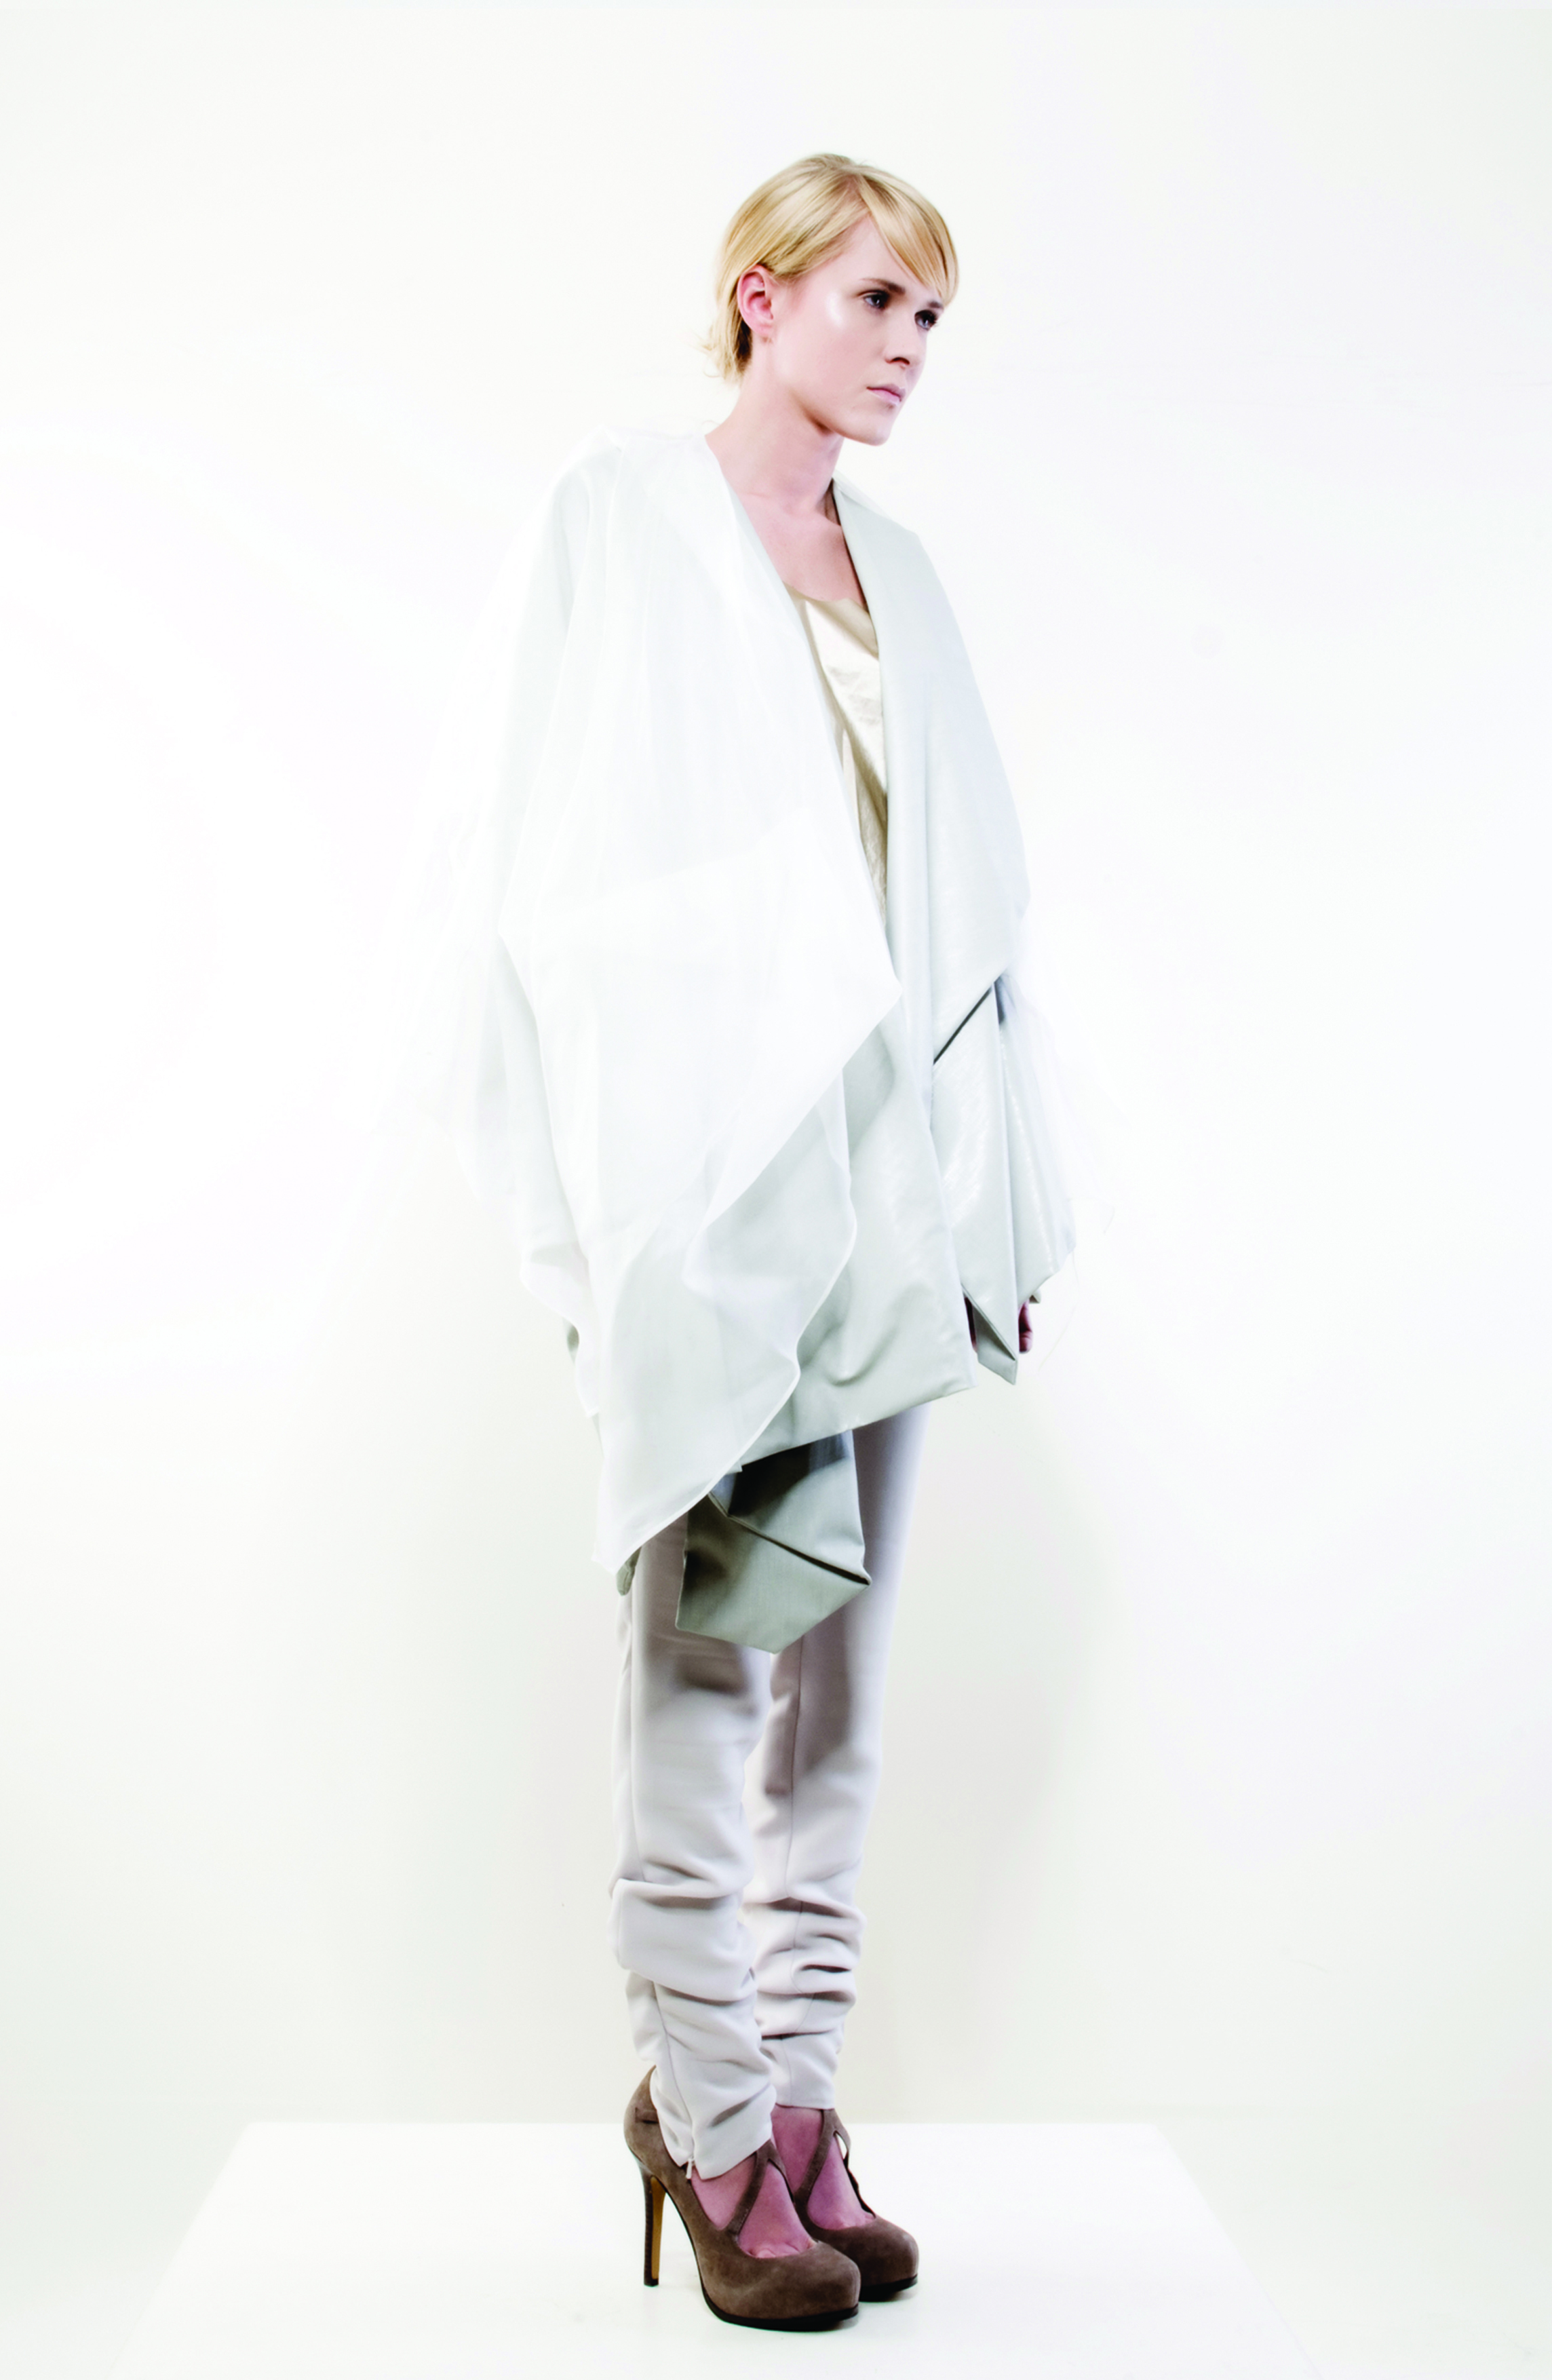 outfit-5a-Gravity-and-Levitation-Spring-Summer-Collection-Isabel-Wong-asymmetric-white-silk-organza-jacket.jpg